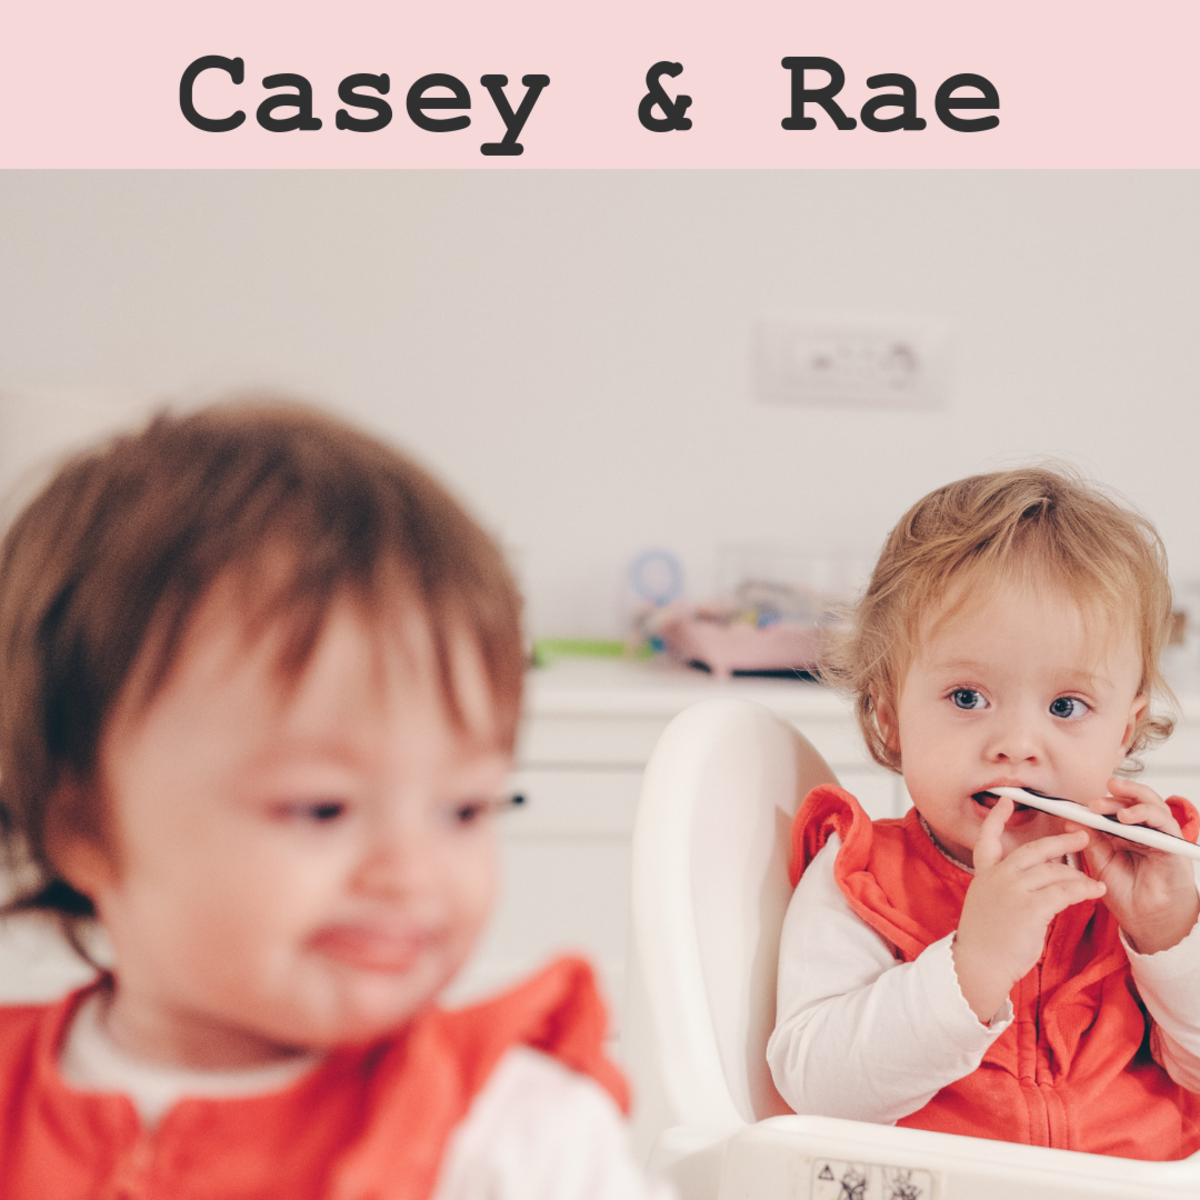 Casey and Rae